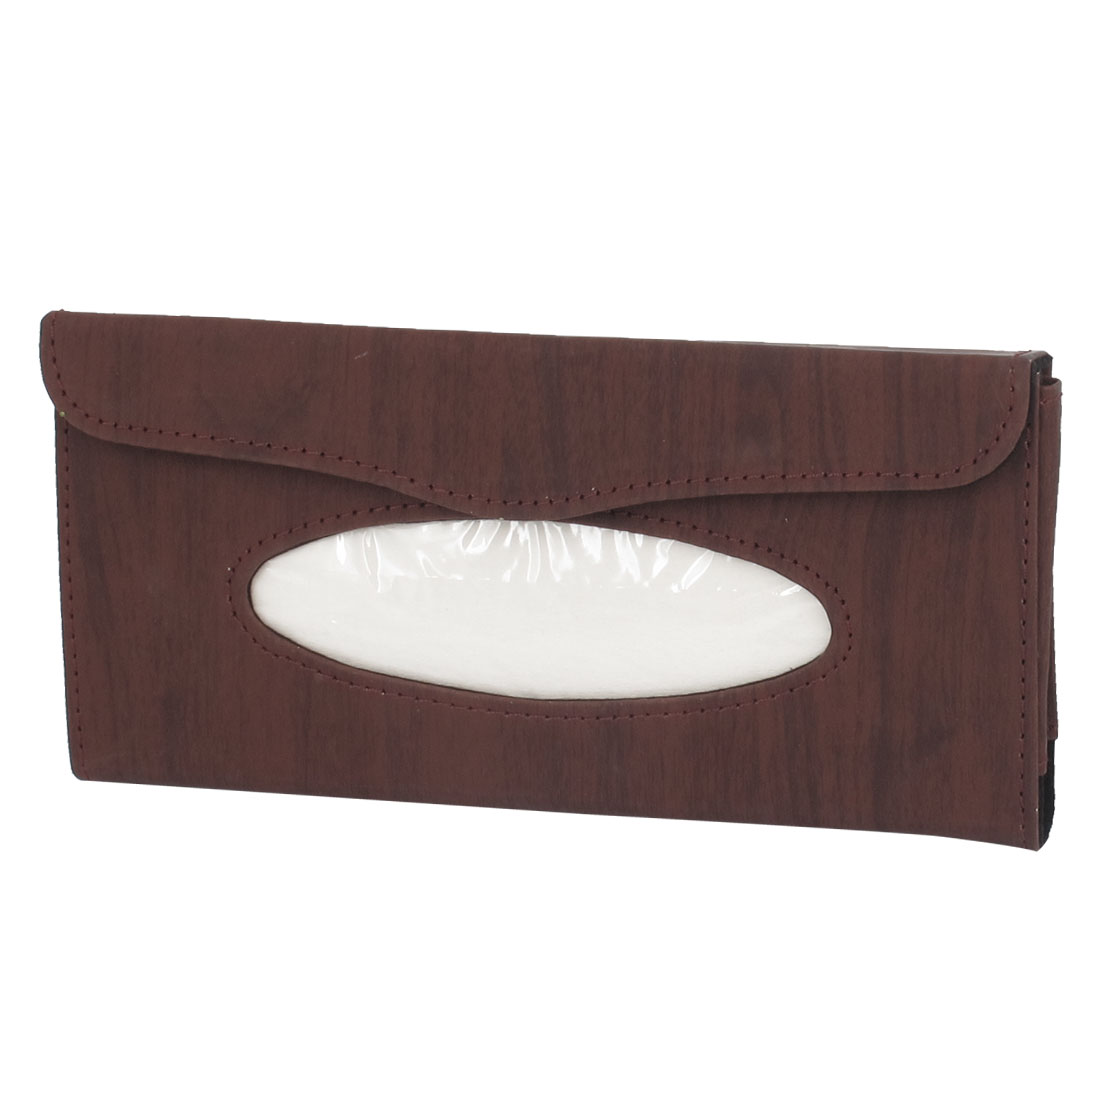 Sun Visor Wood Pattern Clip on Tissue Holder Case Coffee Color for Car